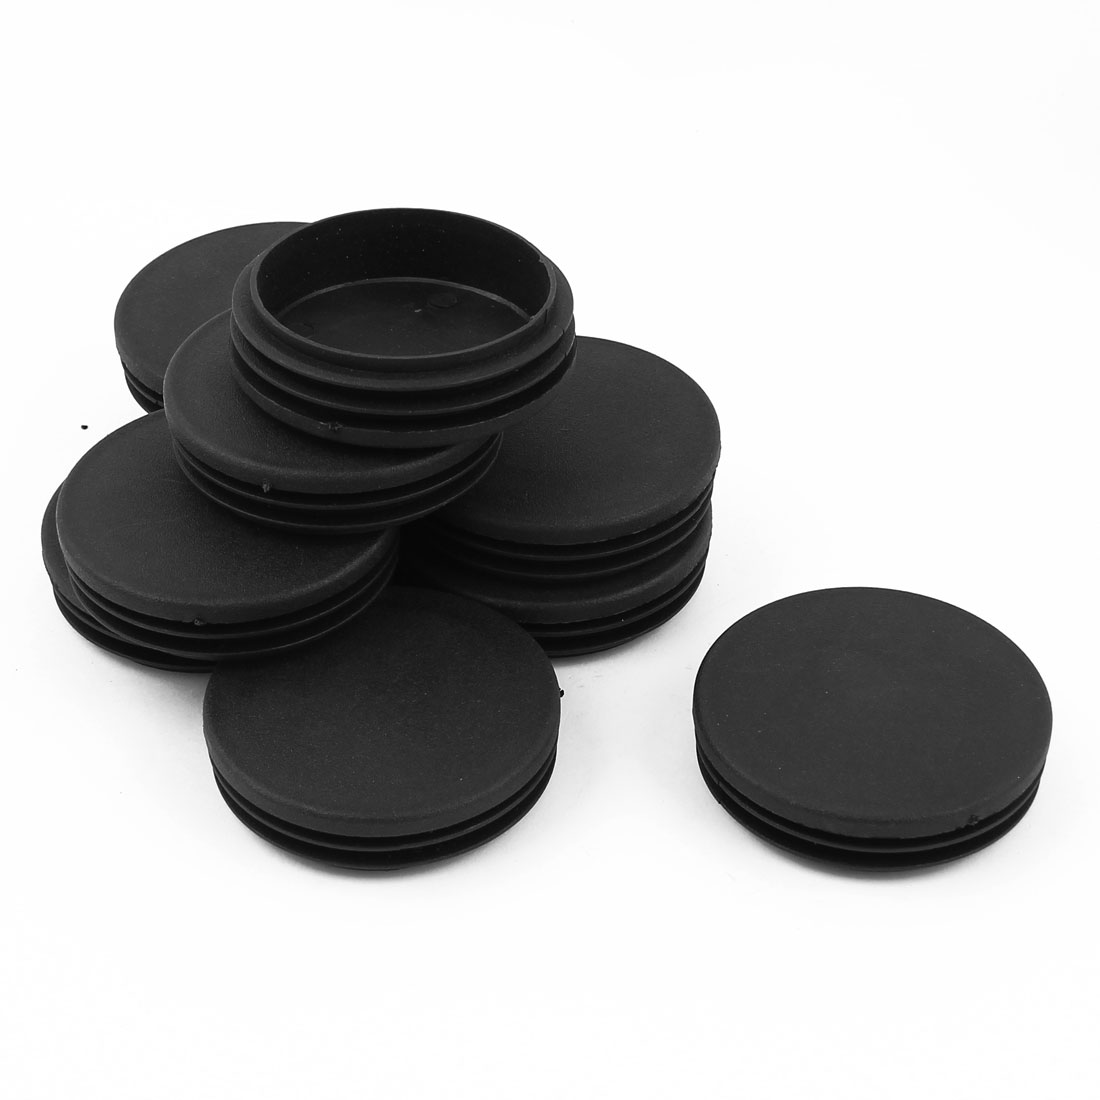 10 Pcs Black Plastic 63mm Blanking End Caps Round Tube Insert Plug Bung